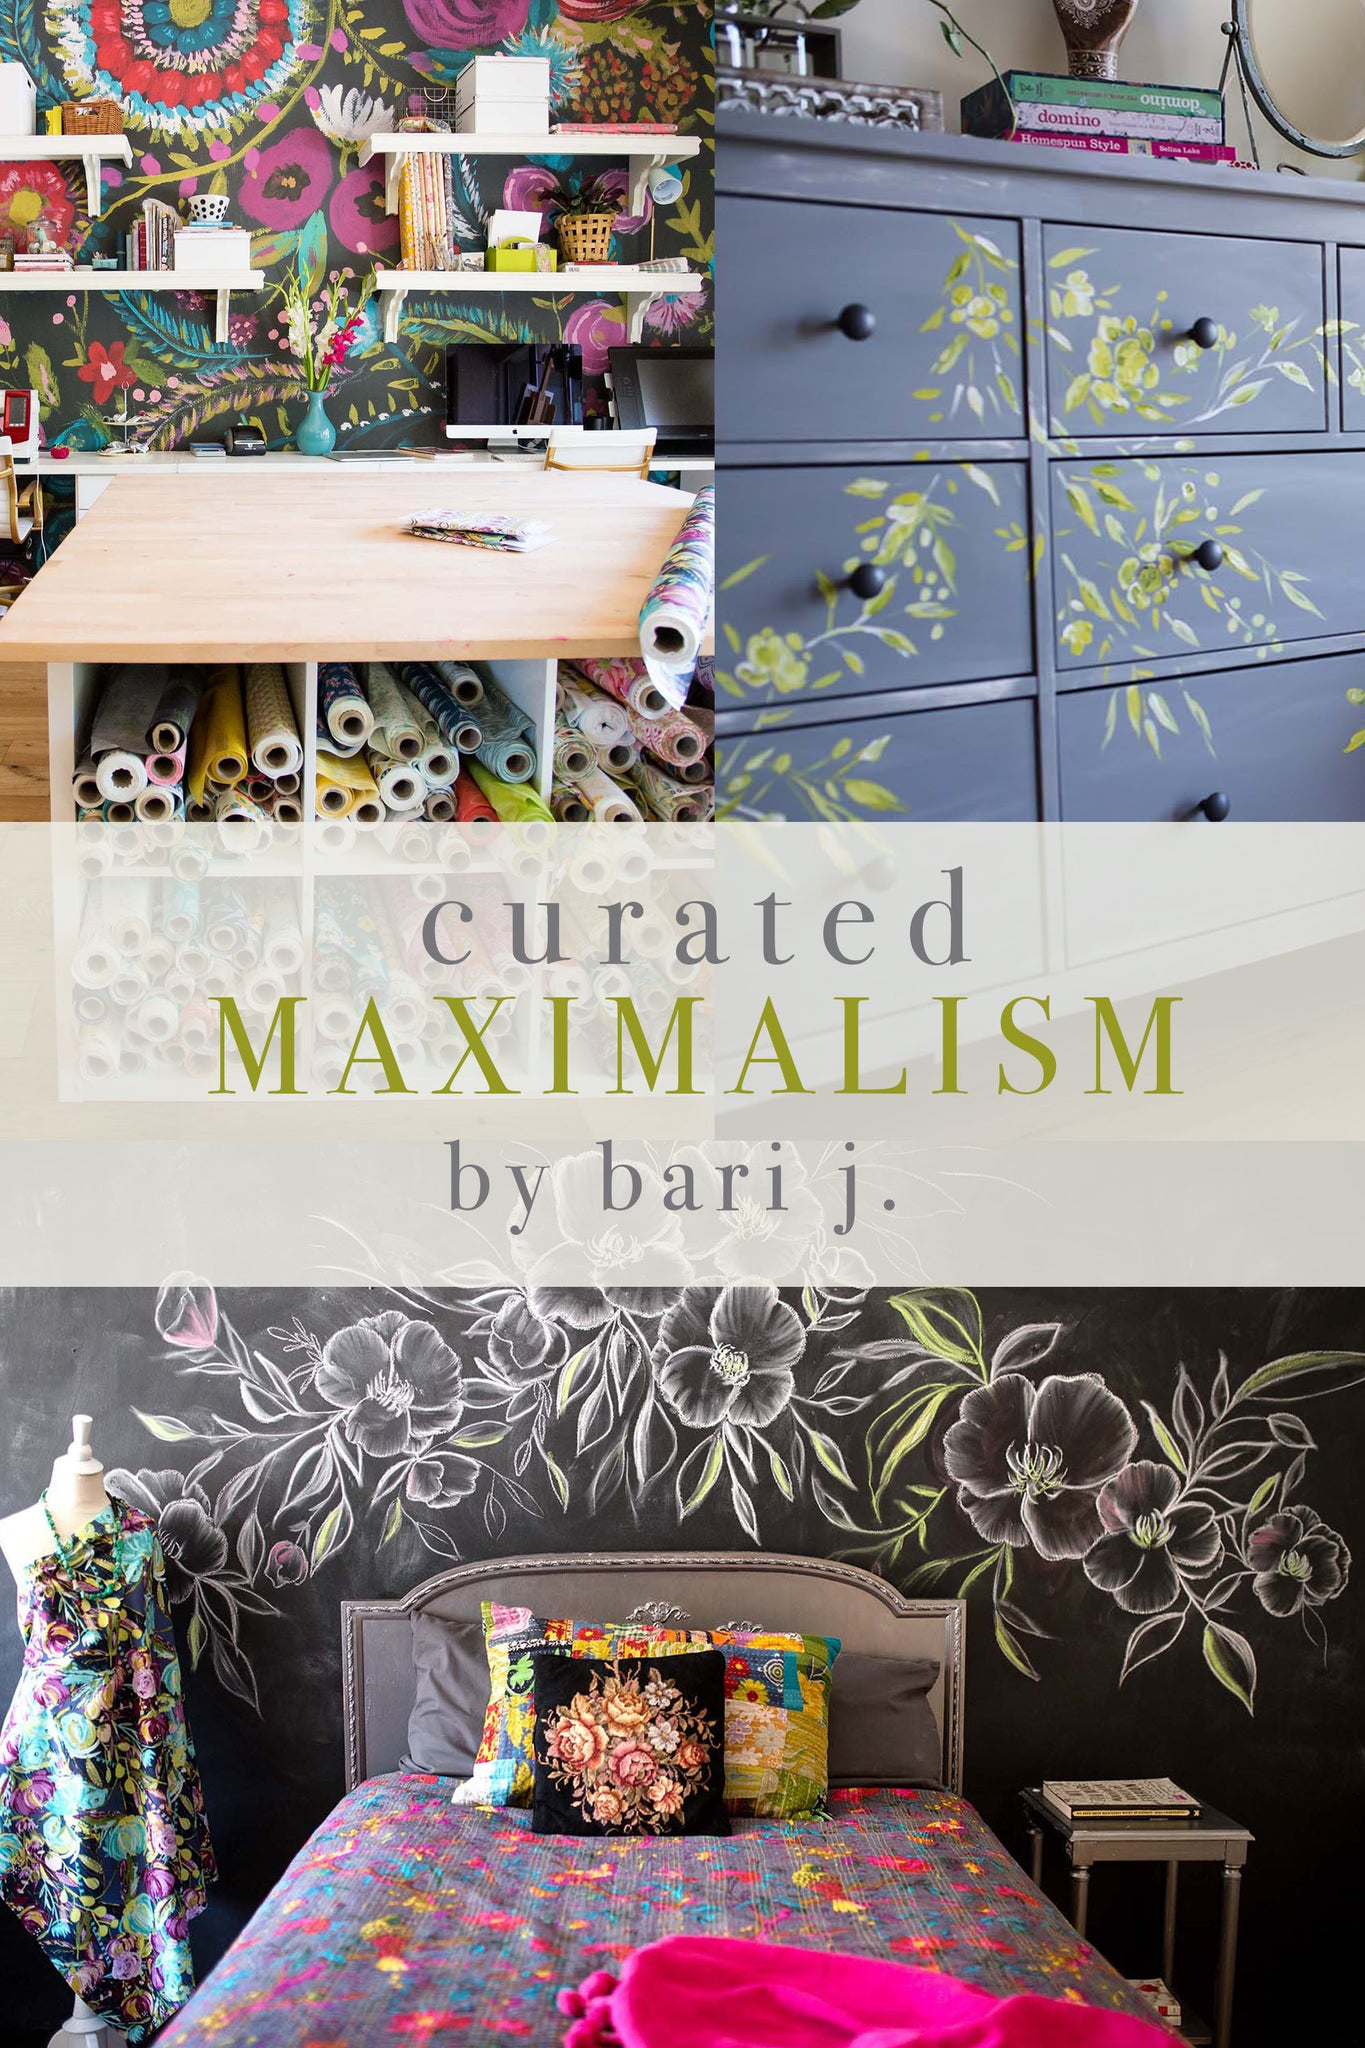 Curated Maximalism by Bari J.